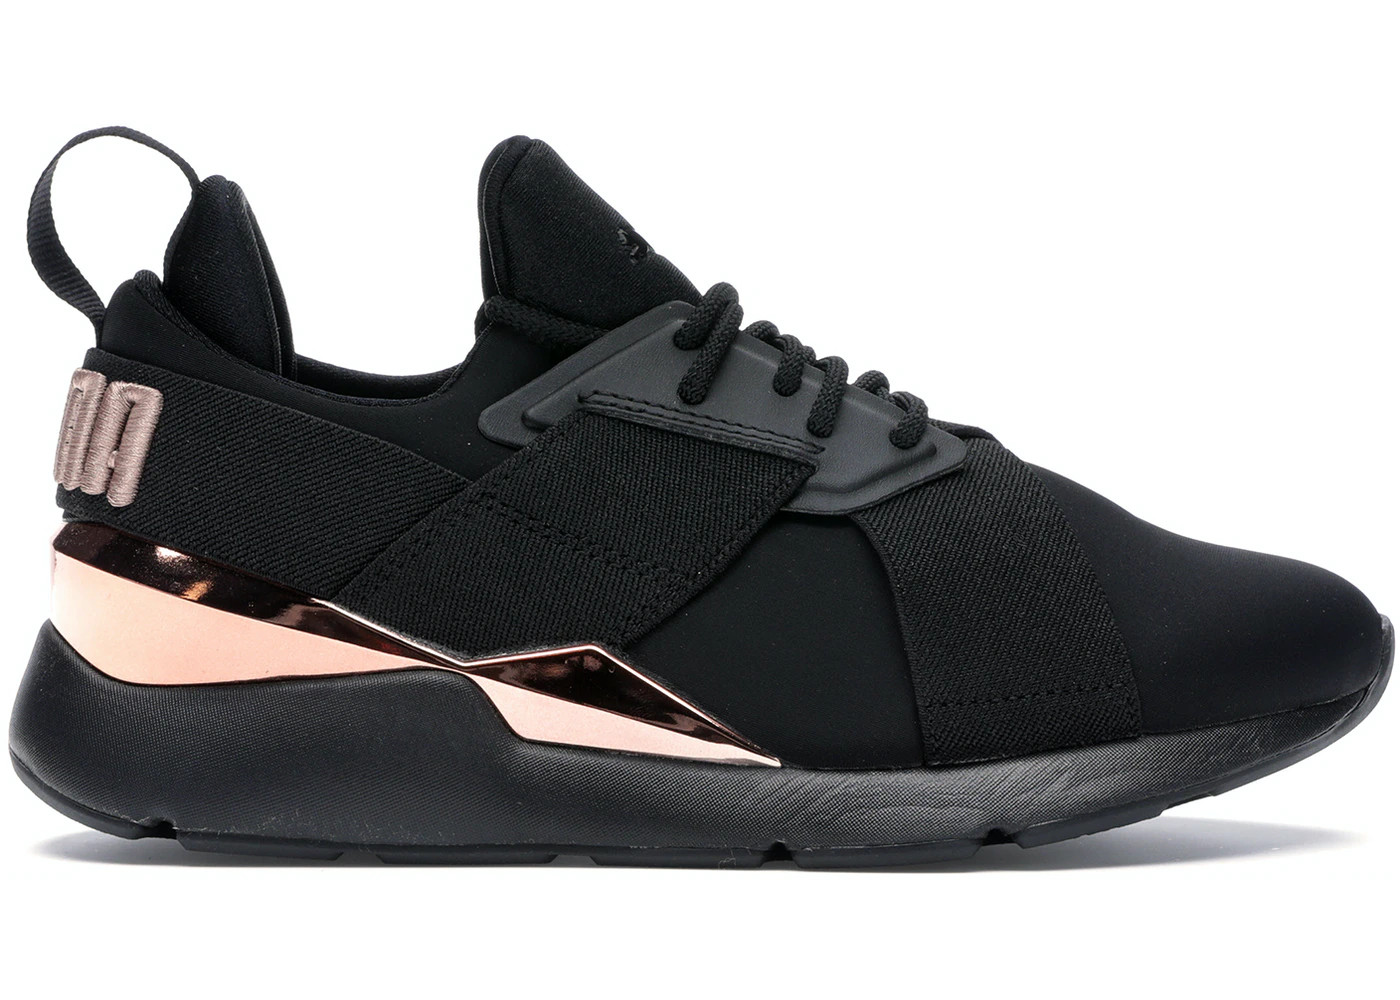 Puma Wmns Muse Metal Rose Gold Black Casual Shoes Sneakers 367047 01 Sepsale